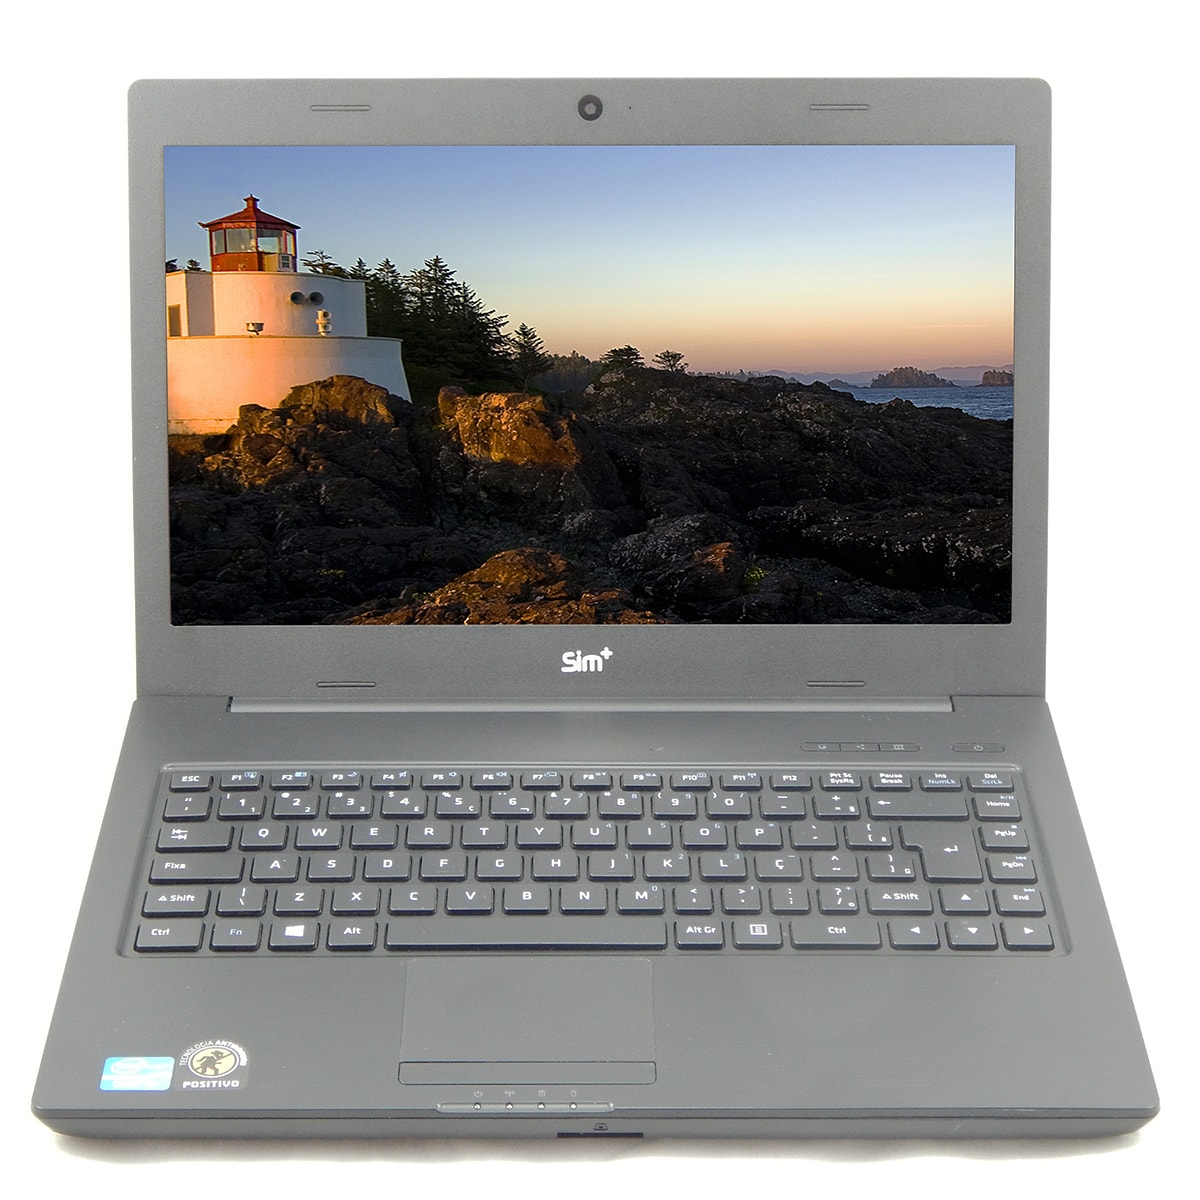 NOTEBOOK POSITIVO SIM 6120M I5-3320 8Gb 500Gb HD Dvd - Seminovo